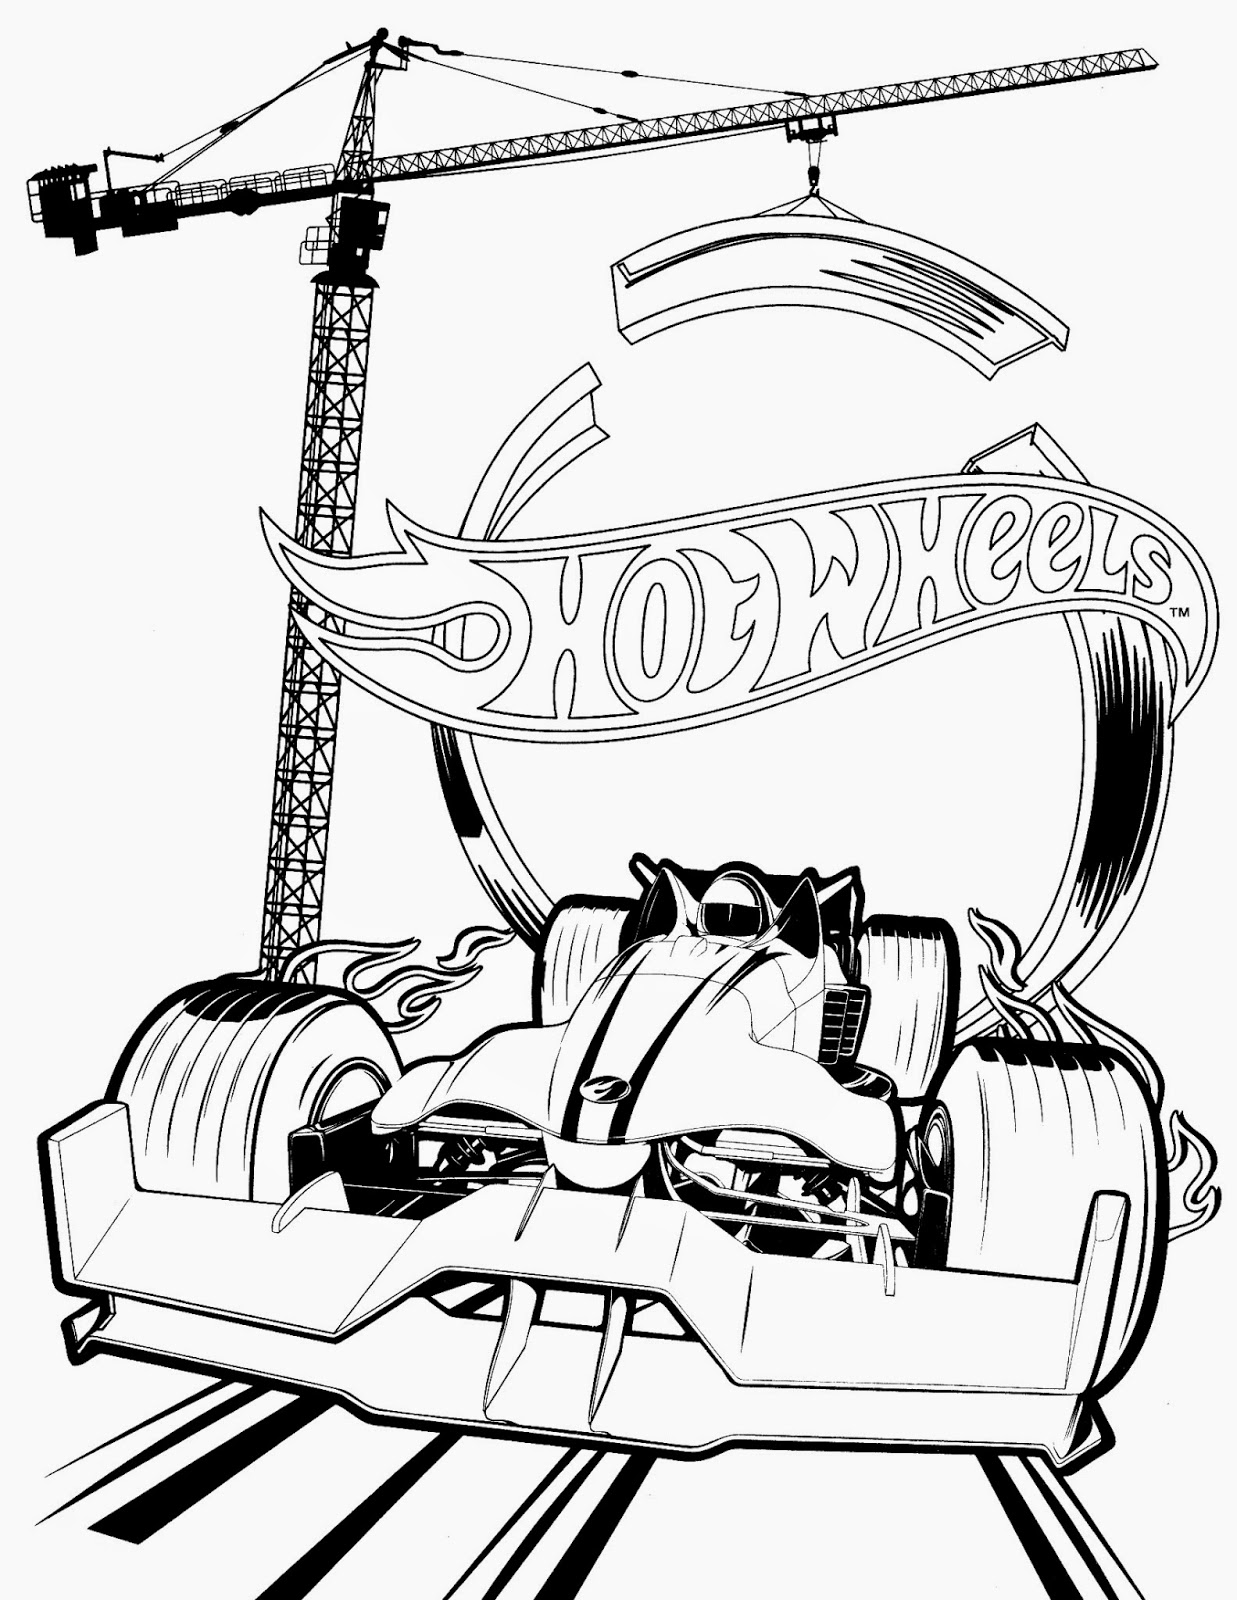 Hot wheels racing league hot wheels coloring pages set 4 for Hot wheels wall tracks template